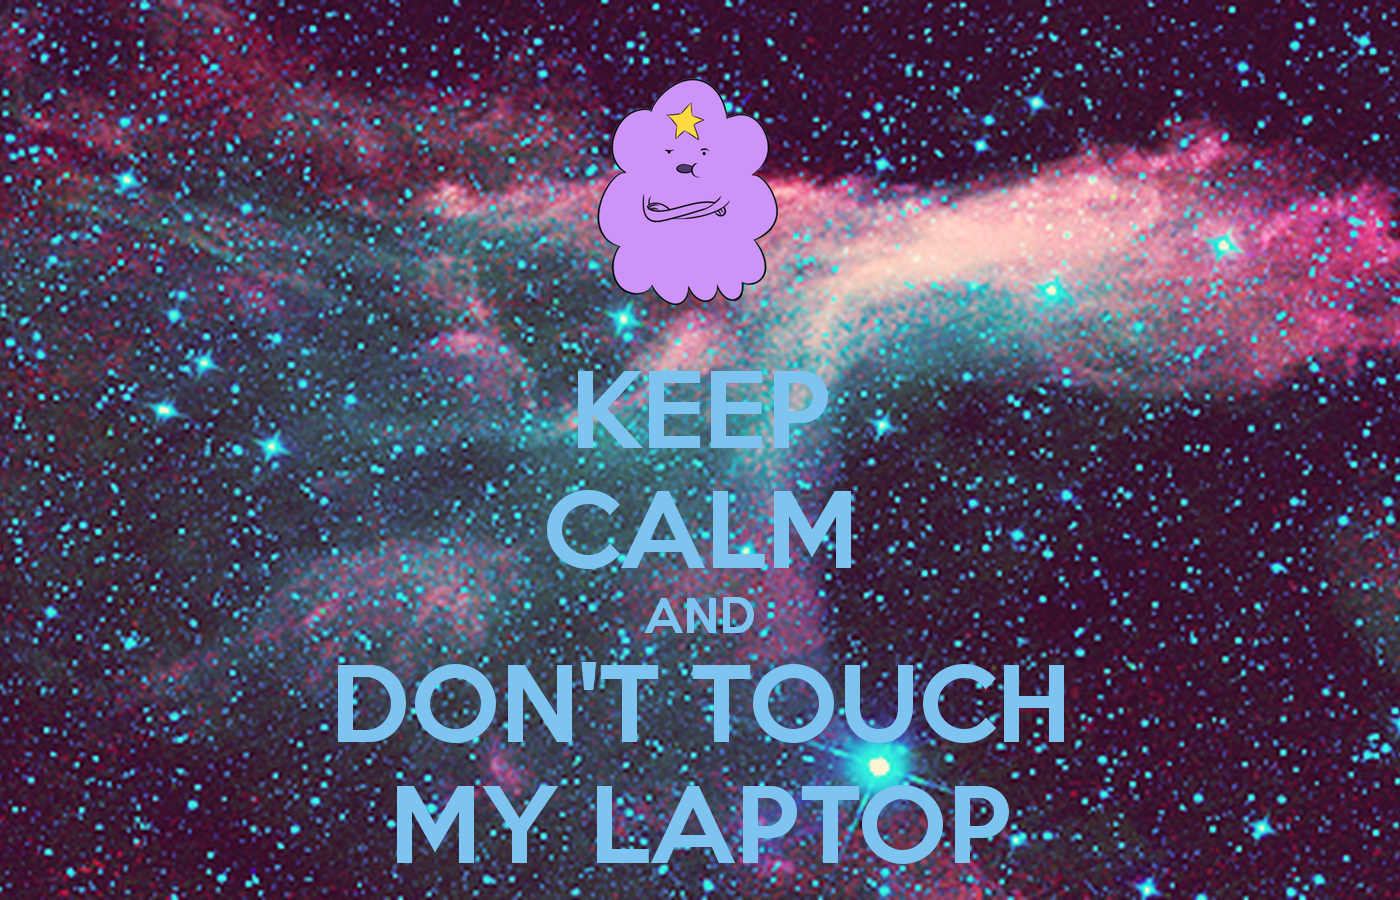 Don T Touch My Computer Wallpaper Wallpapersafari HD Wallpapers Download Free Images Wallpaper [1000image.com]